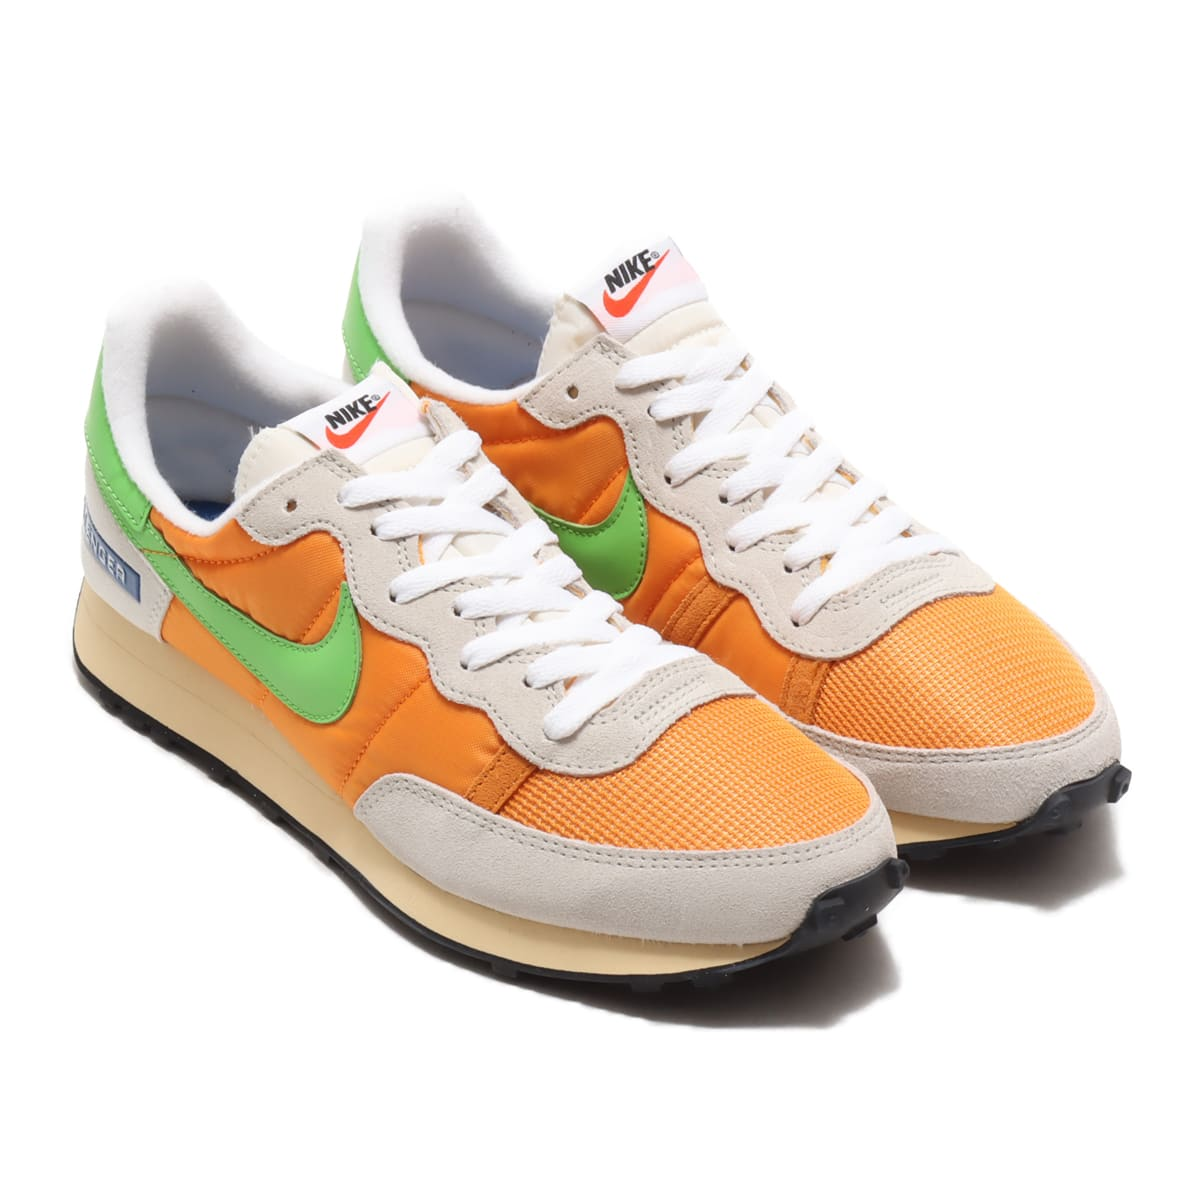 NIKE CHALLENGER OG KUMQUAT/GREEN NEBULA-LIGHT BONE-CANVAS 20HO-I_photo_large